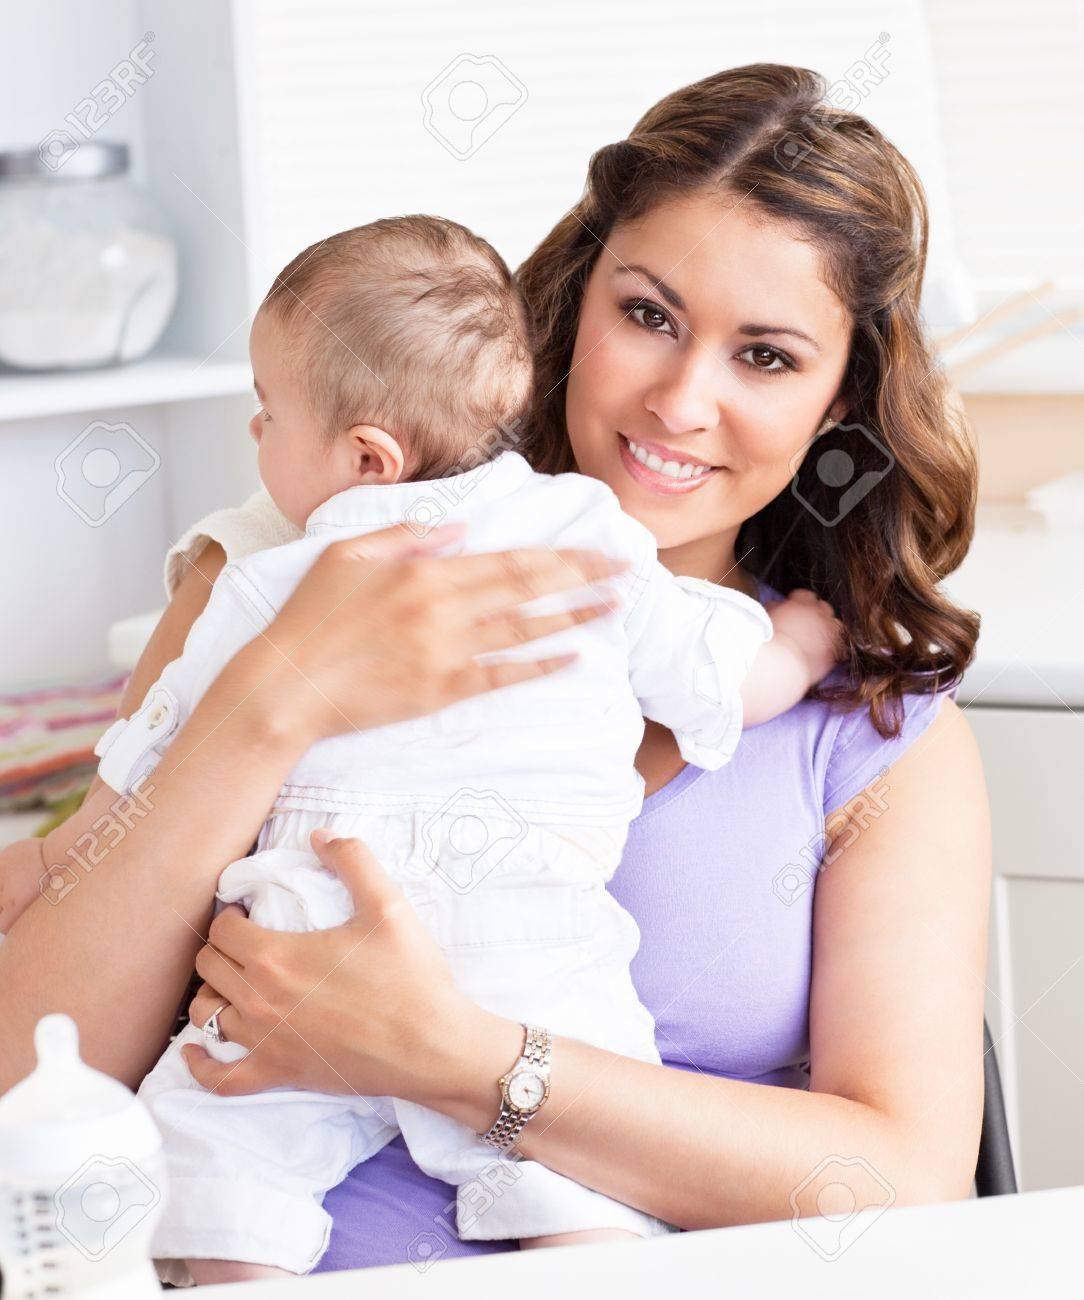 Caucasian young mother taking care of her adorable baby Stock Photo - 10243534